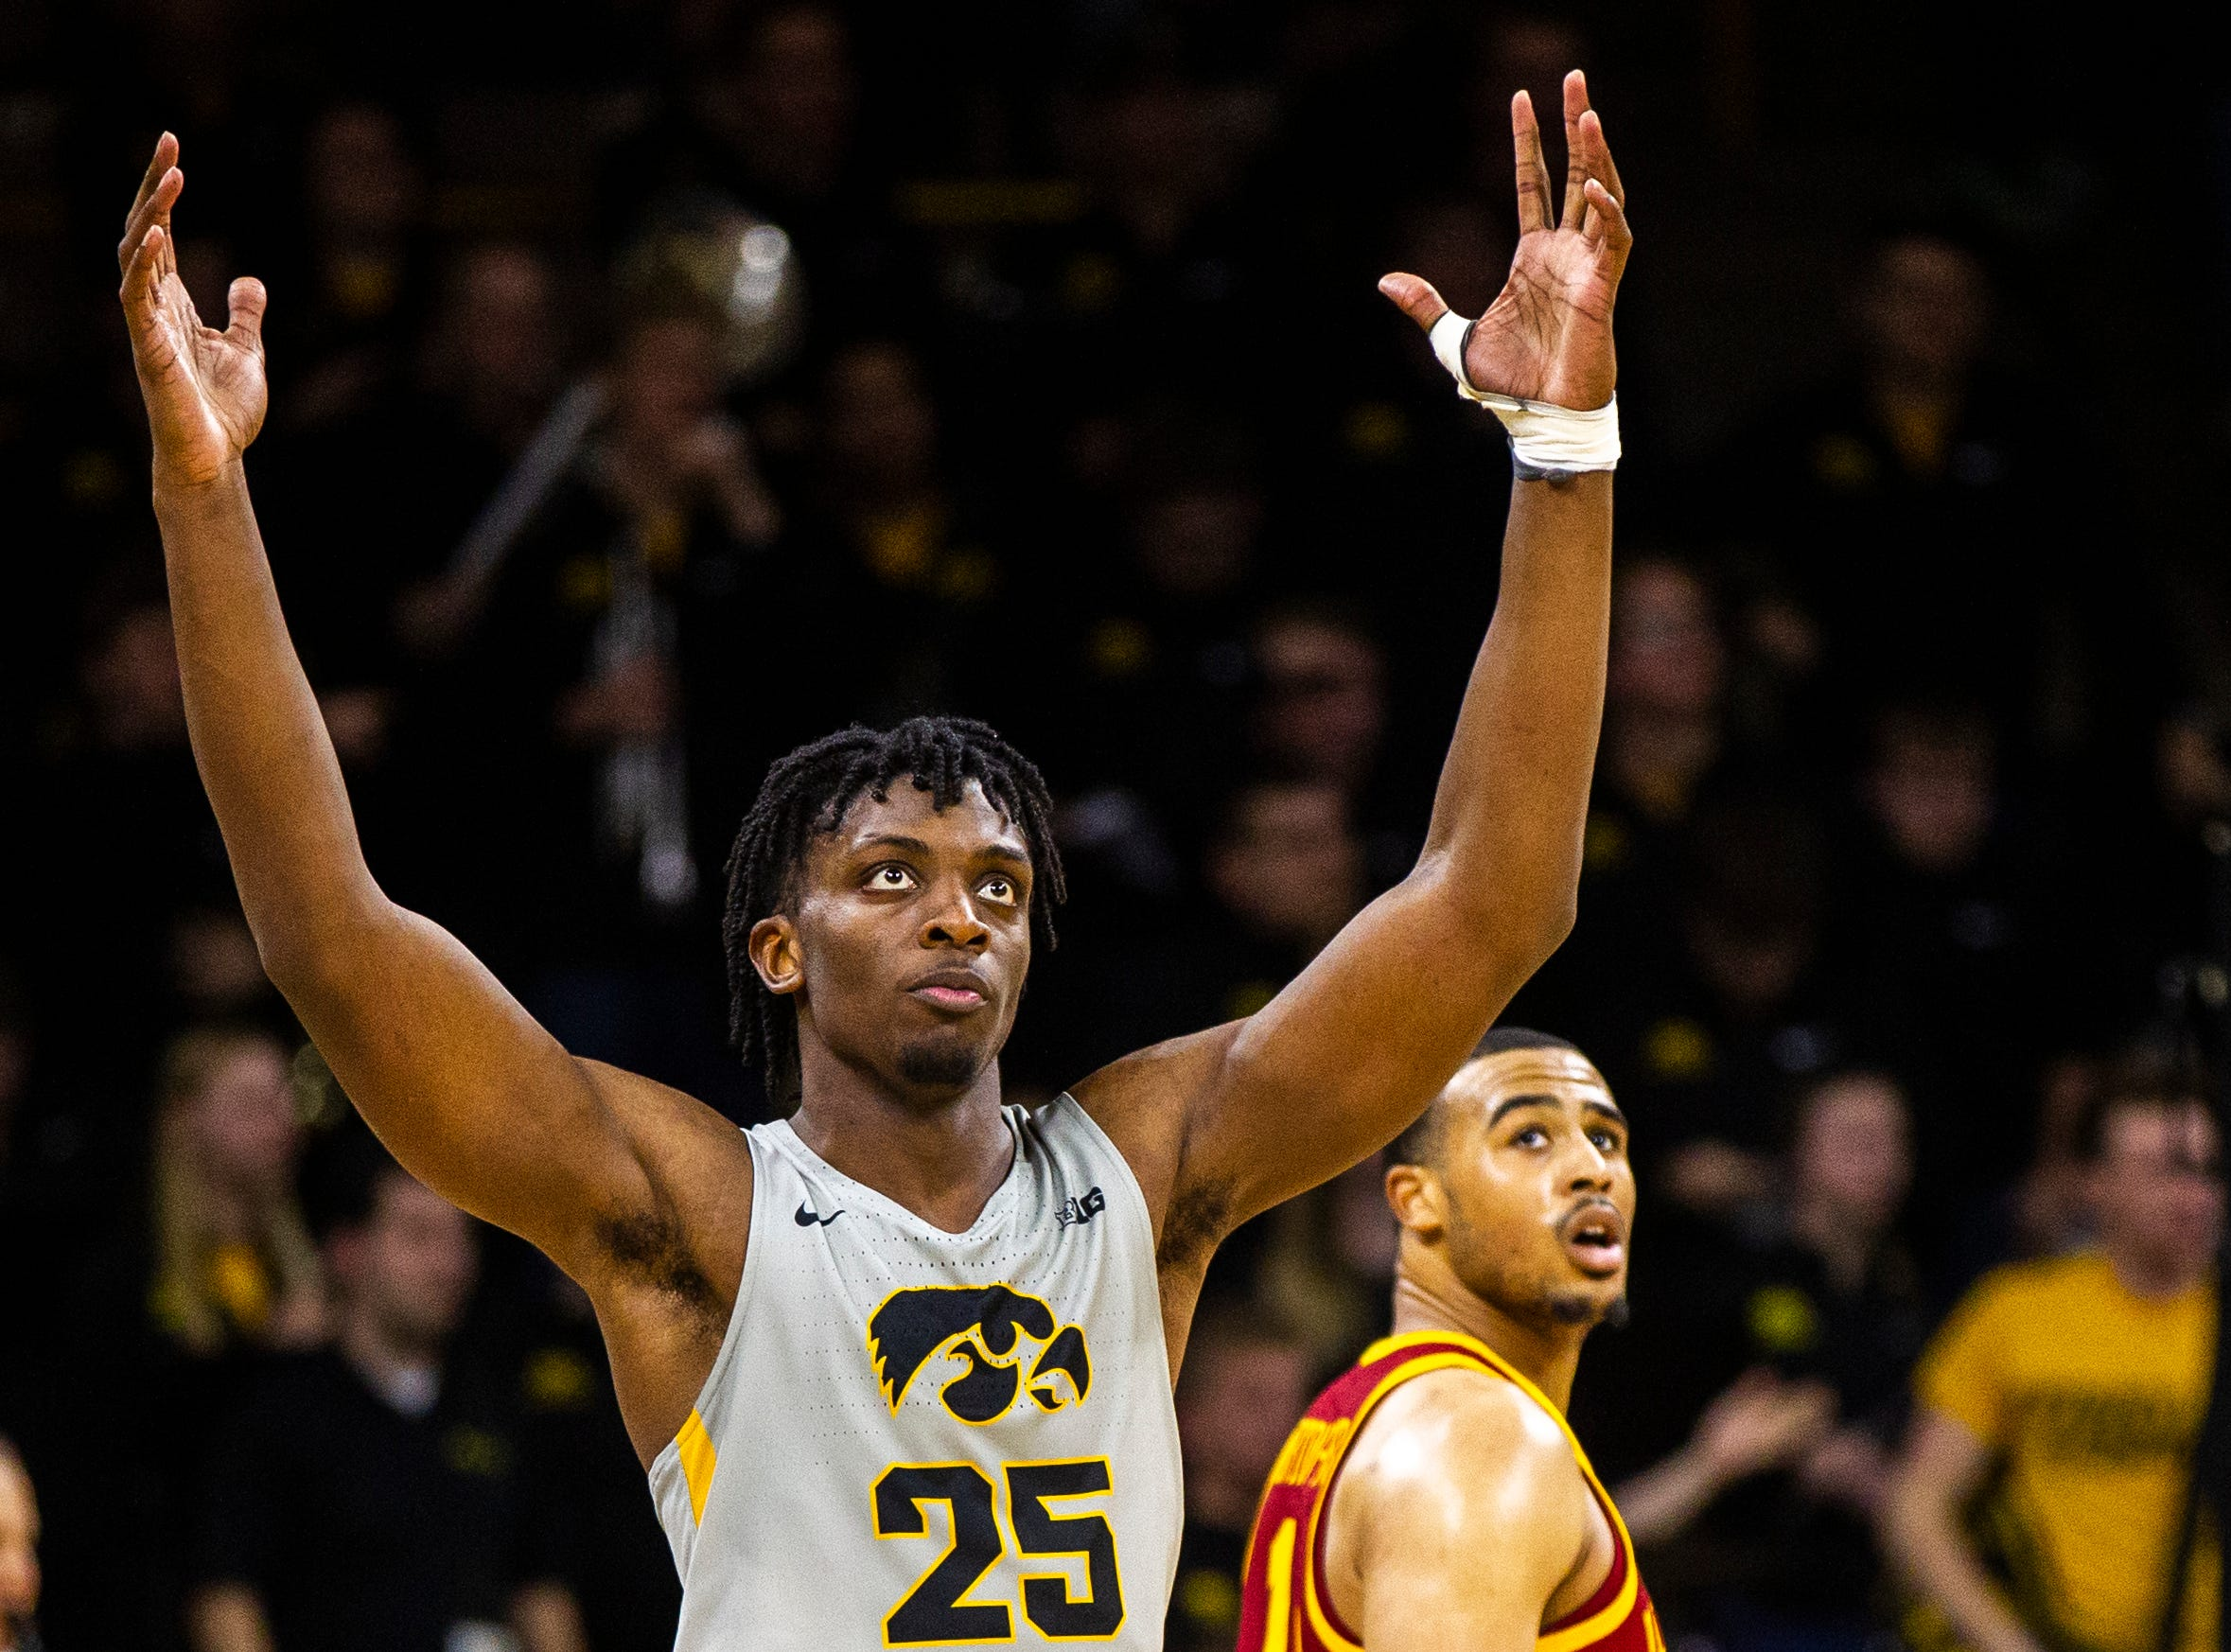 Iowa forward Tyler Cook (25) reacts to a call during a NCAA Cy-Hawk series men's basketball game on Thursday, Dec. 6, 2018, at Carver-Hawkeye Arena in Iowa City.